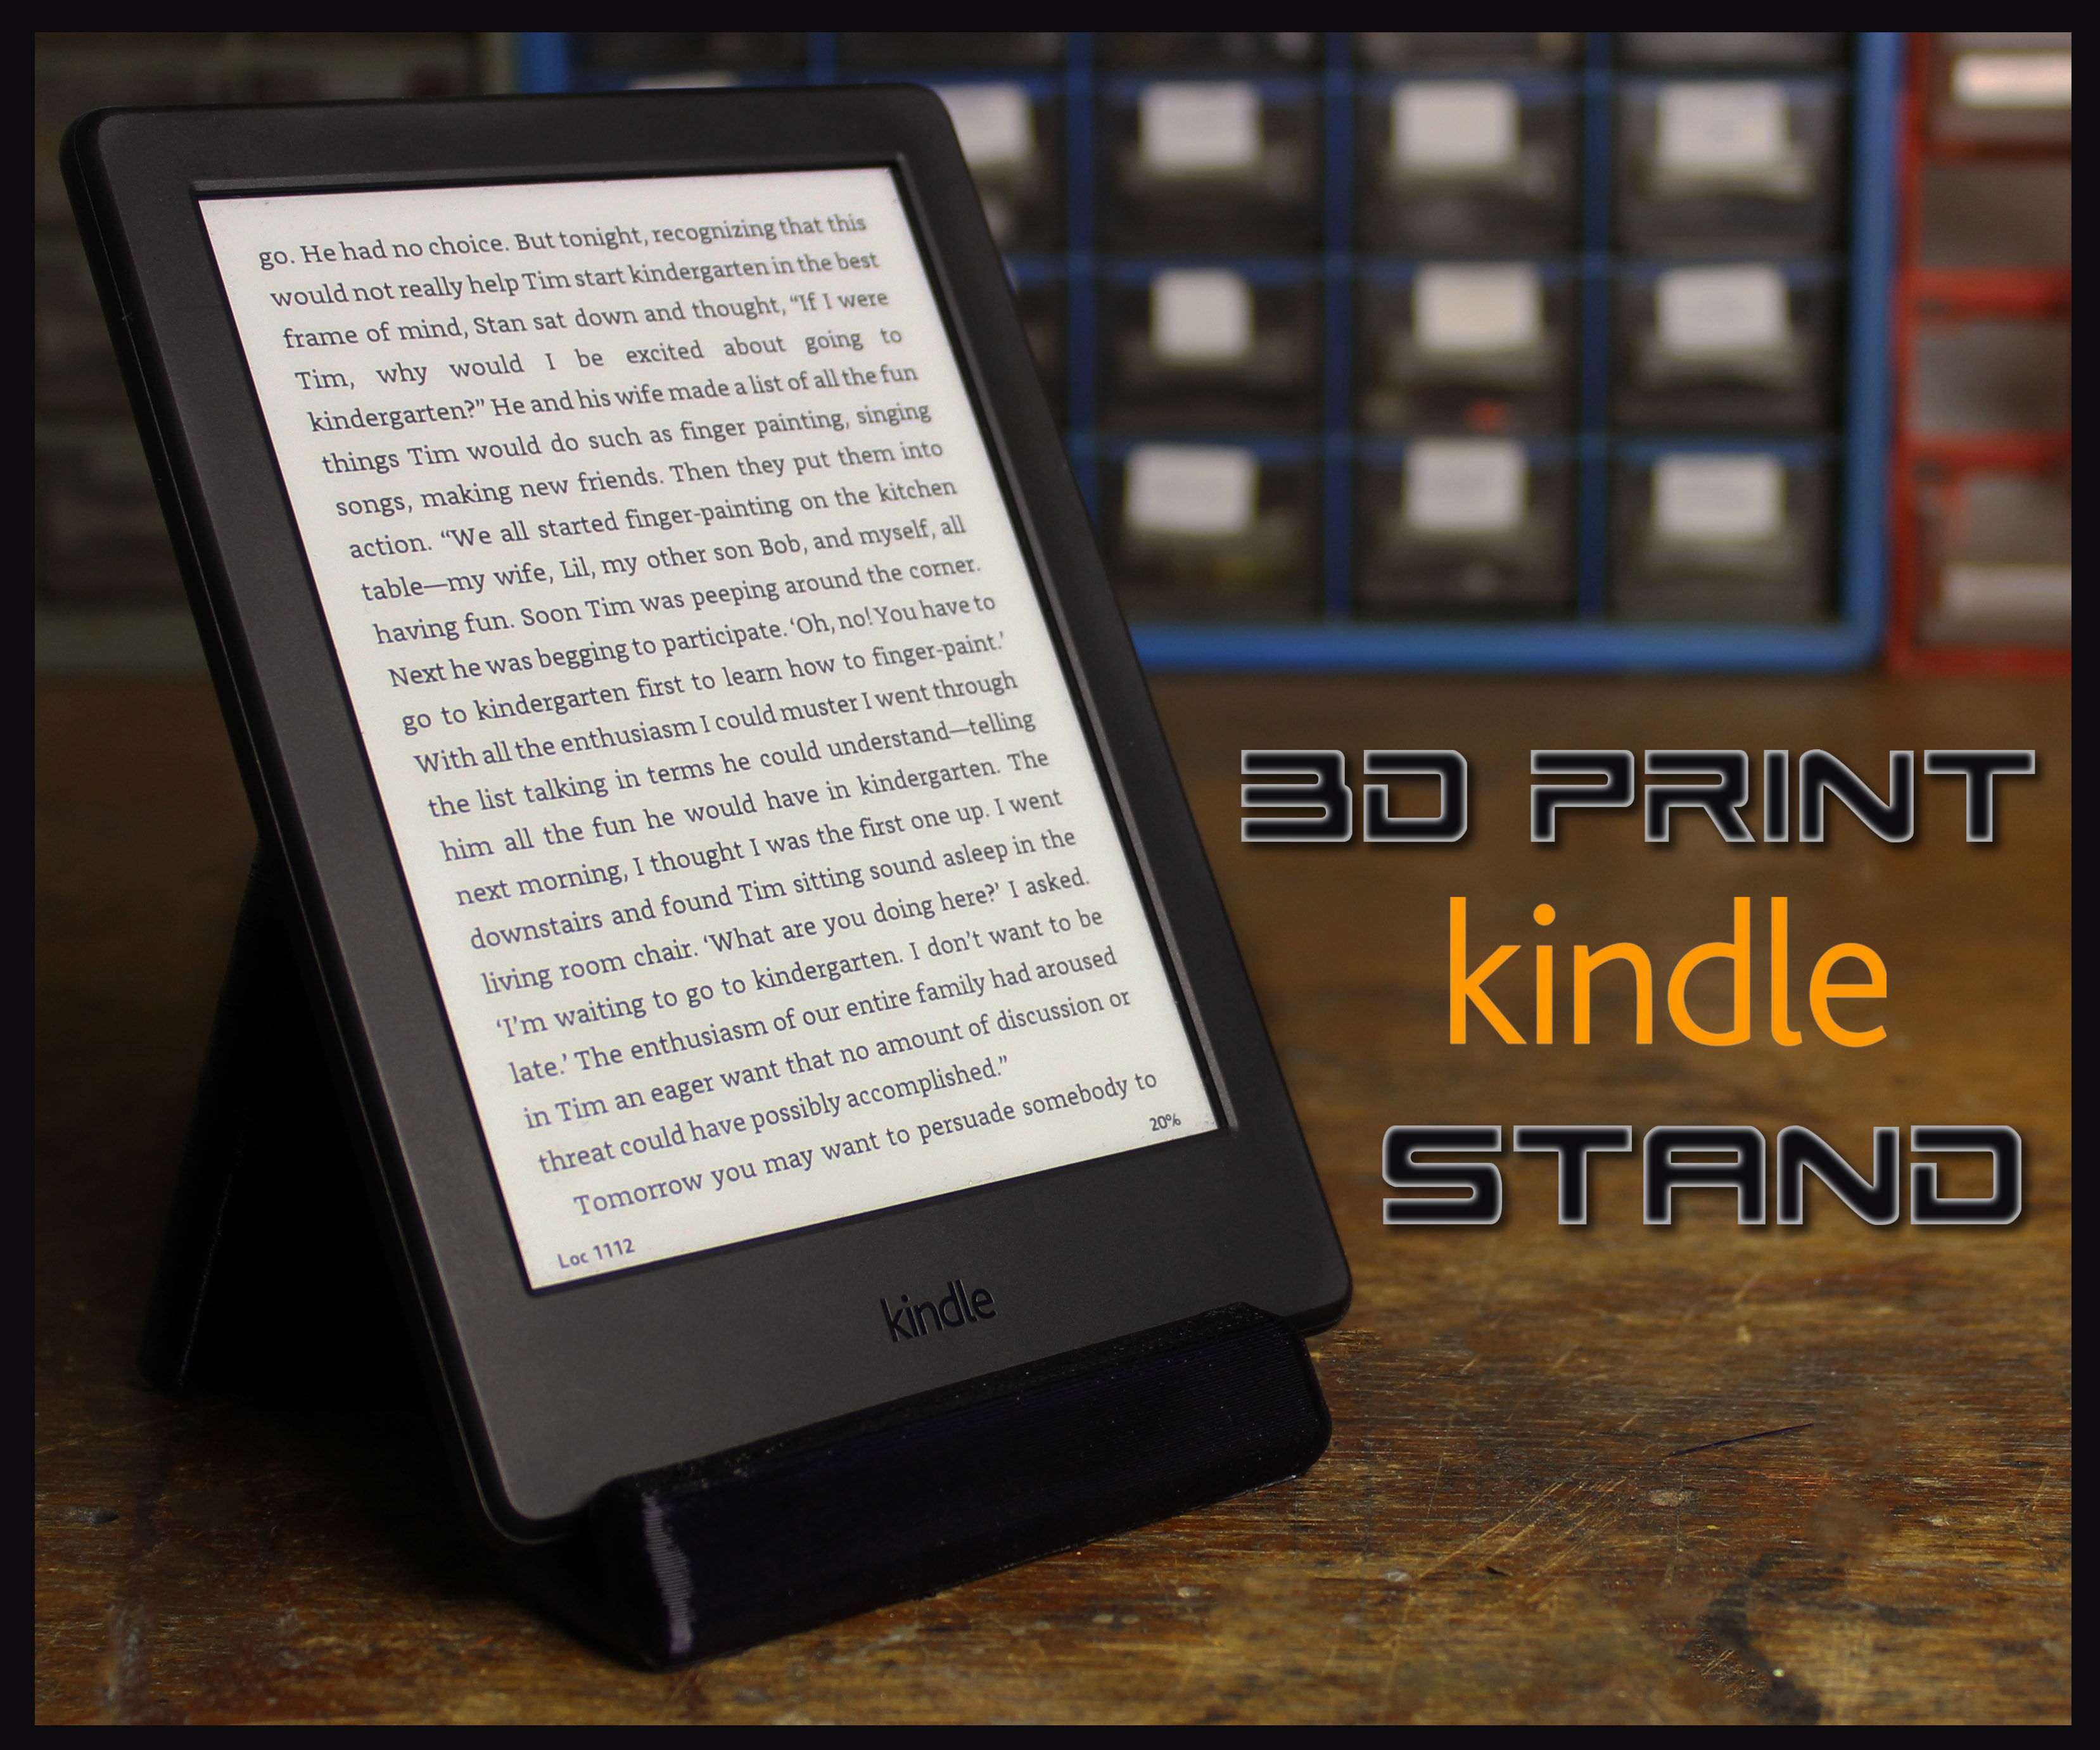 3D Print a Kindle Stand